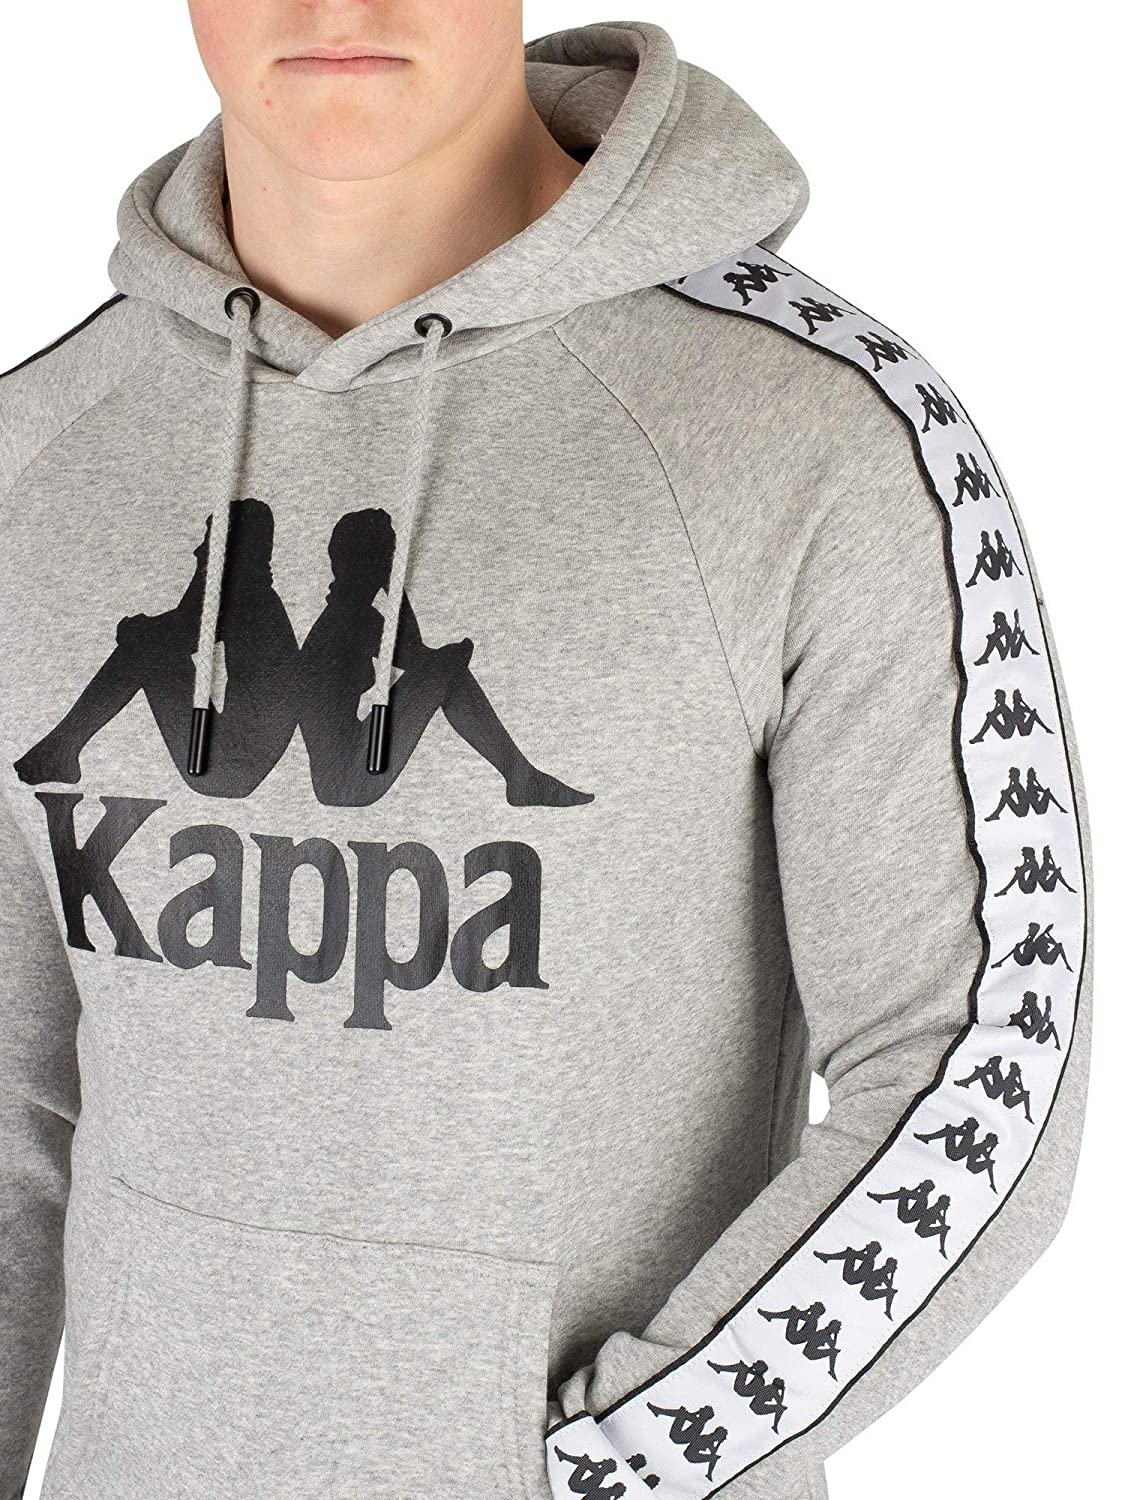 34936e90 Kappa Men's Banda Hurtado Pullover Hoodie, Grey, L at Amazon Men's ...